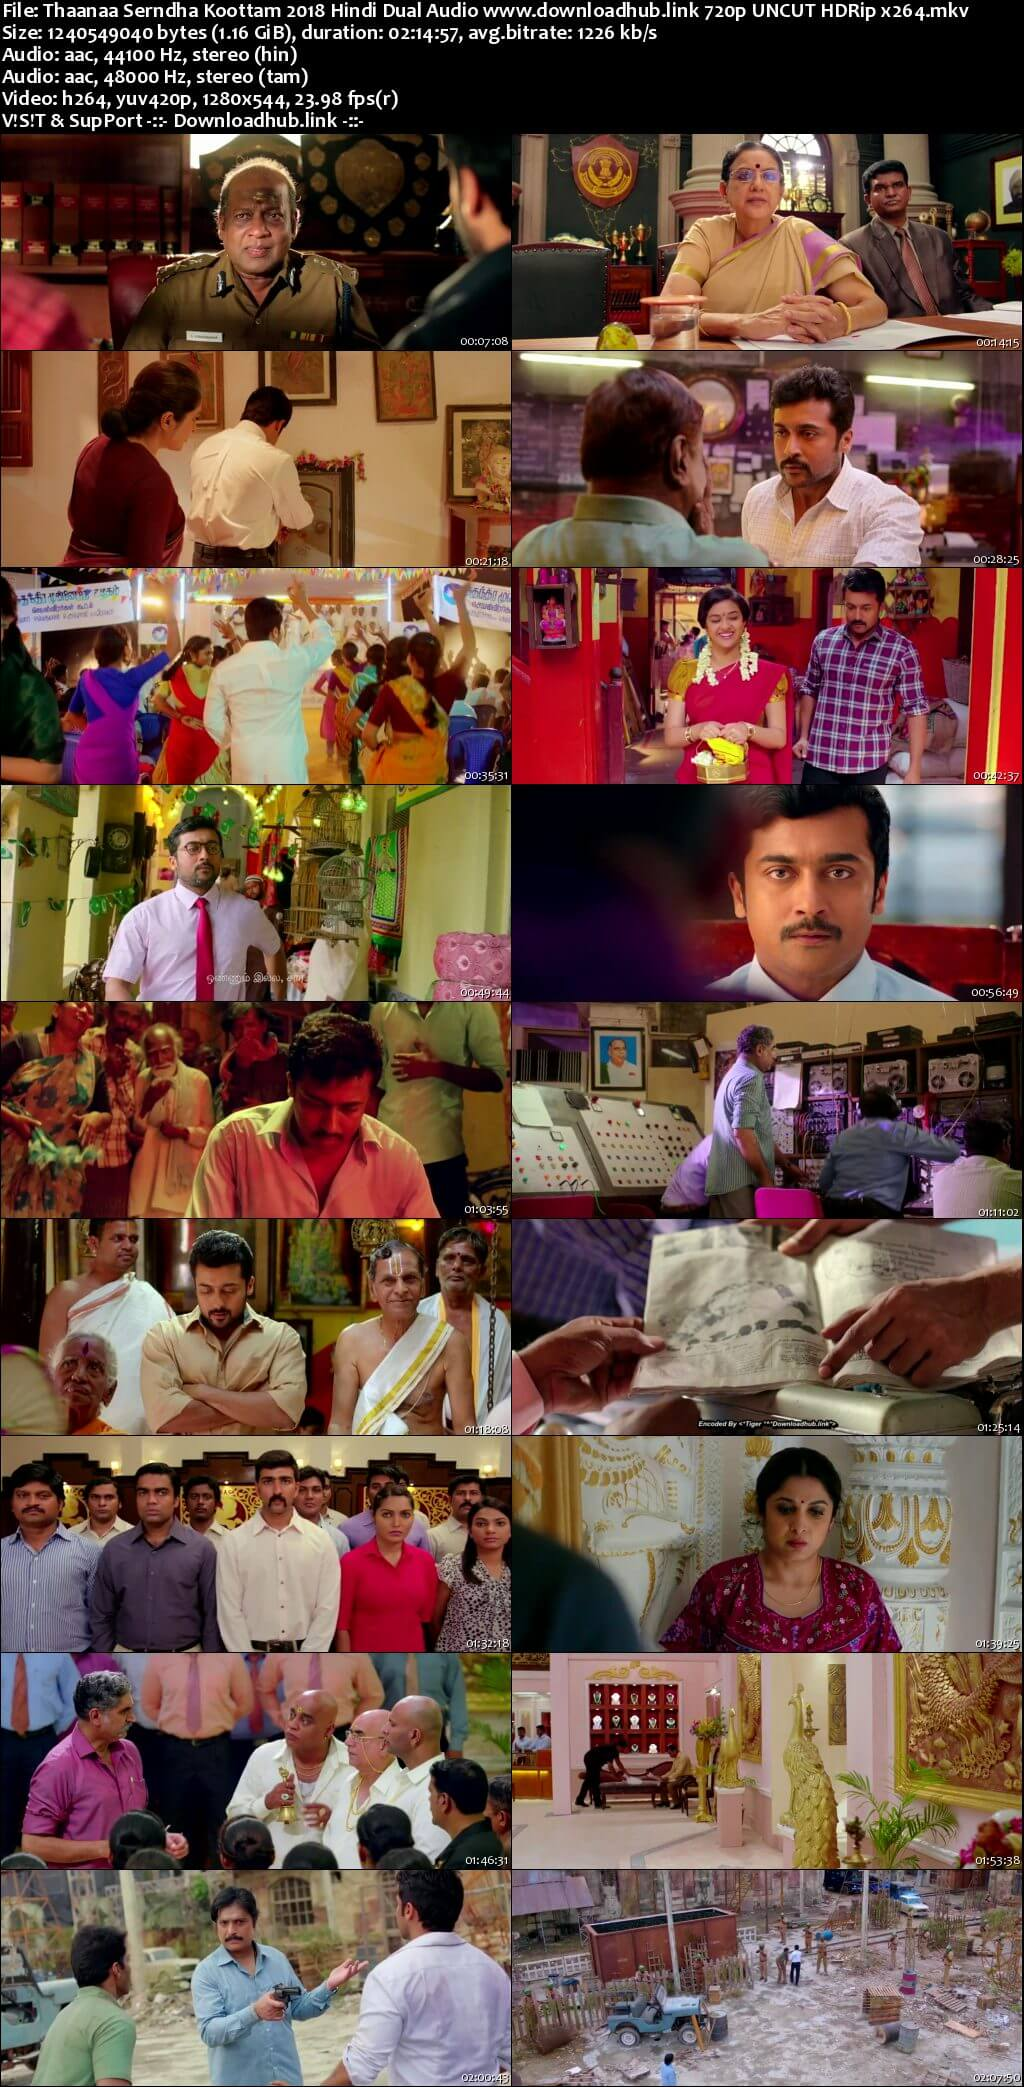 Thaanaa Serndha Koottam 2018 Hindi Dual Audio 720p UNCUT HDRip x264